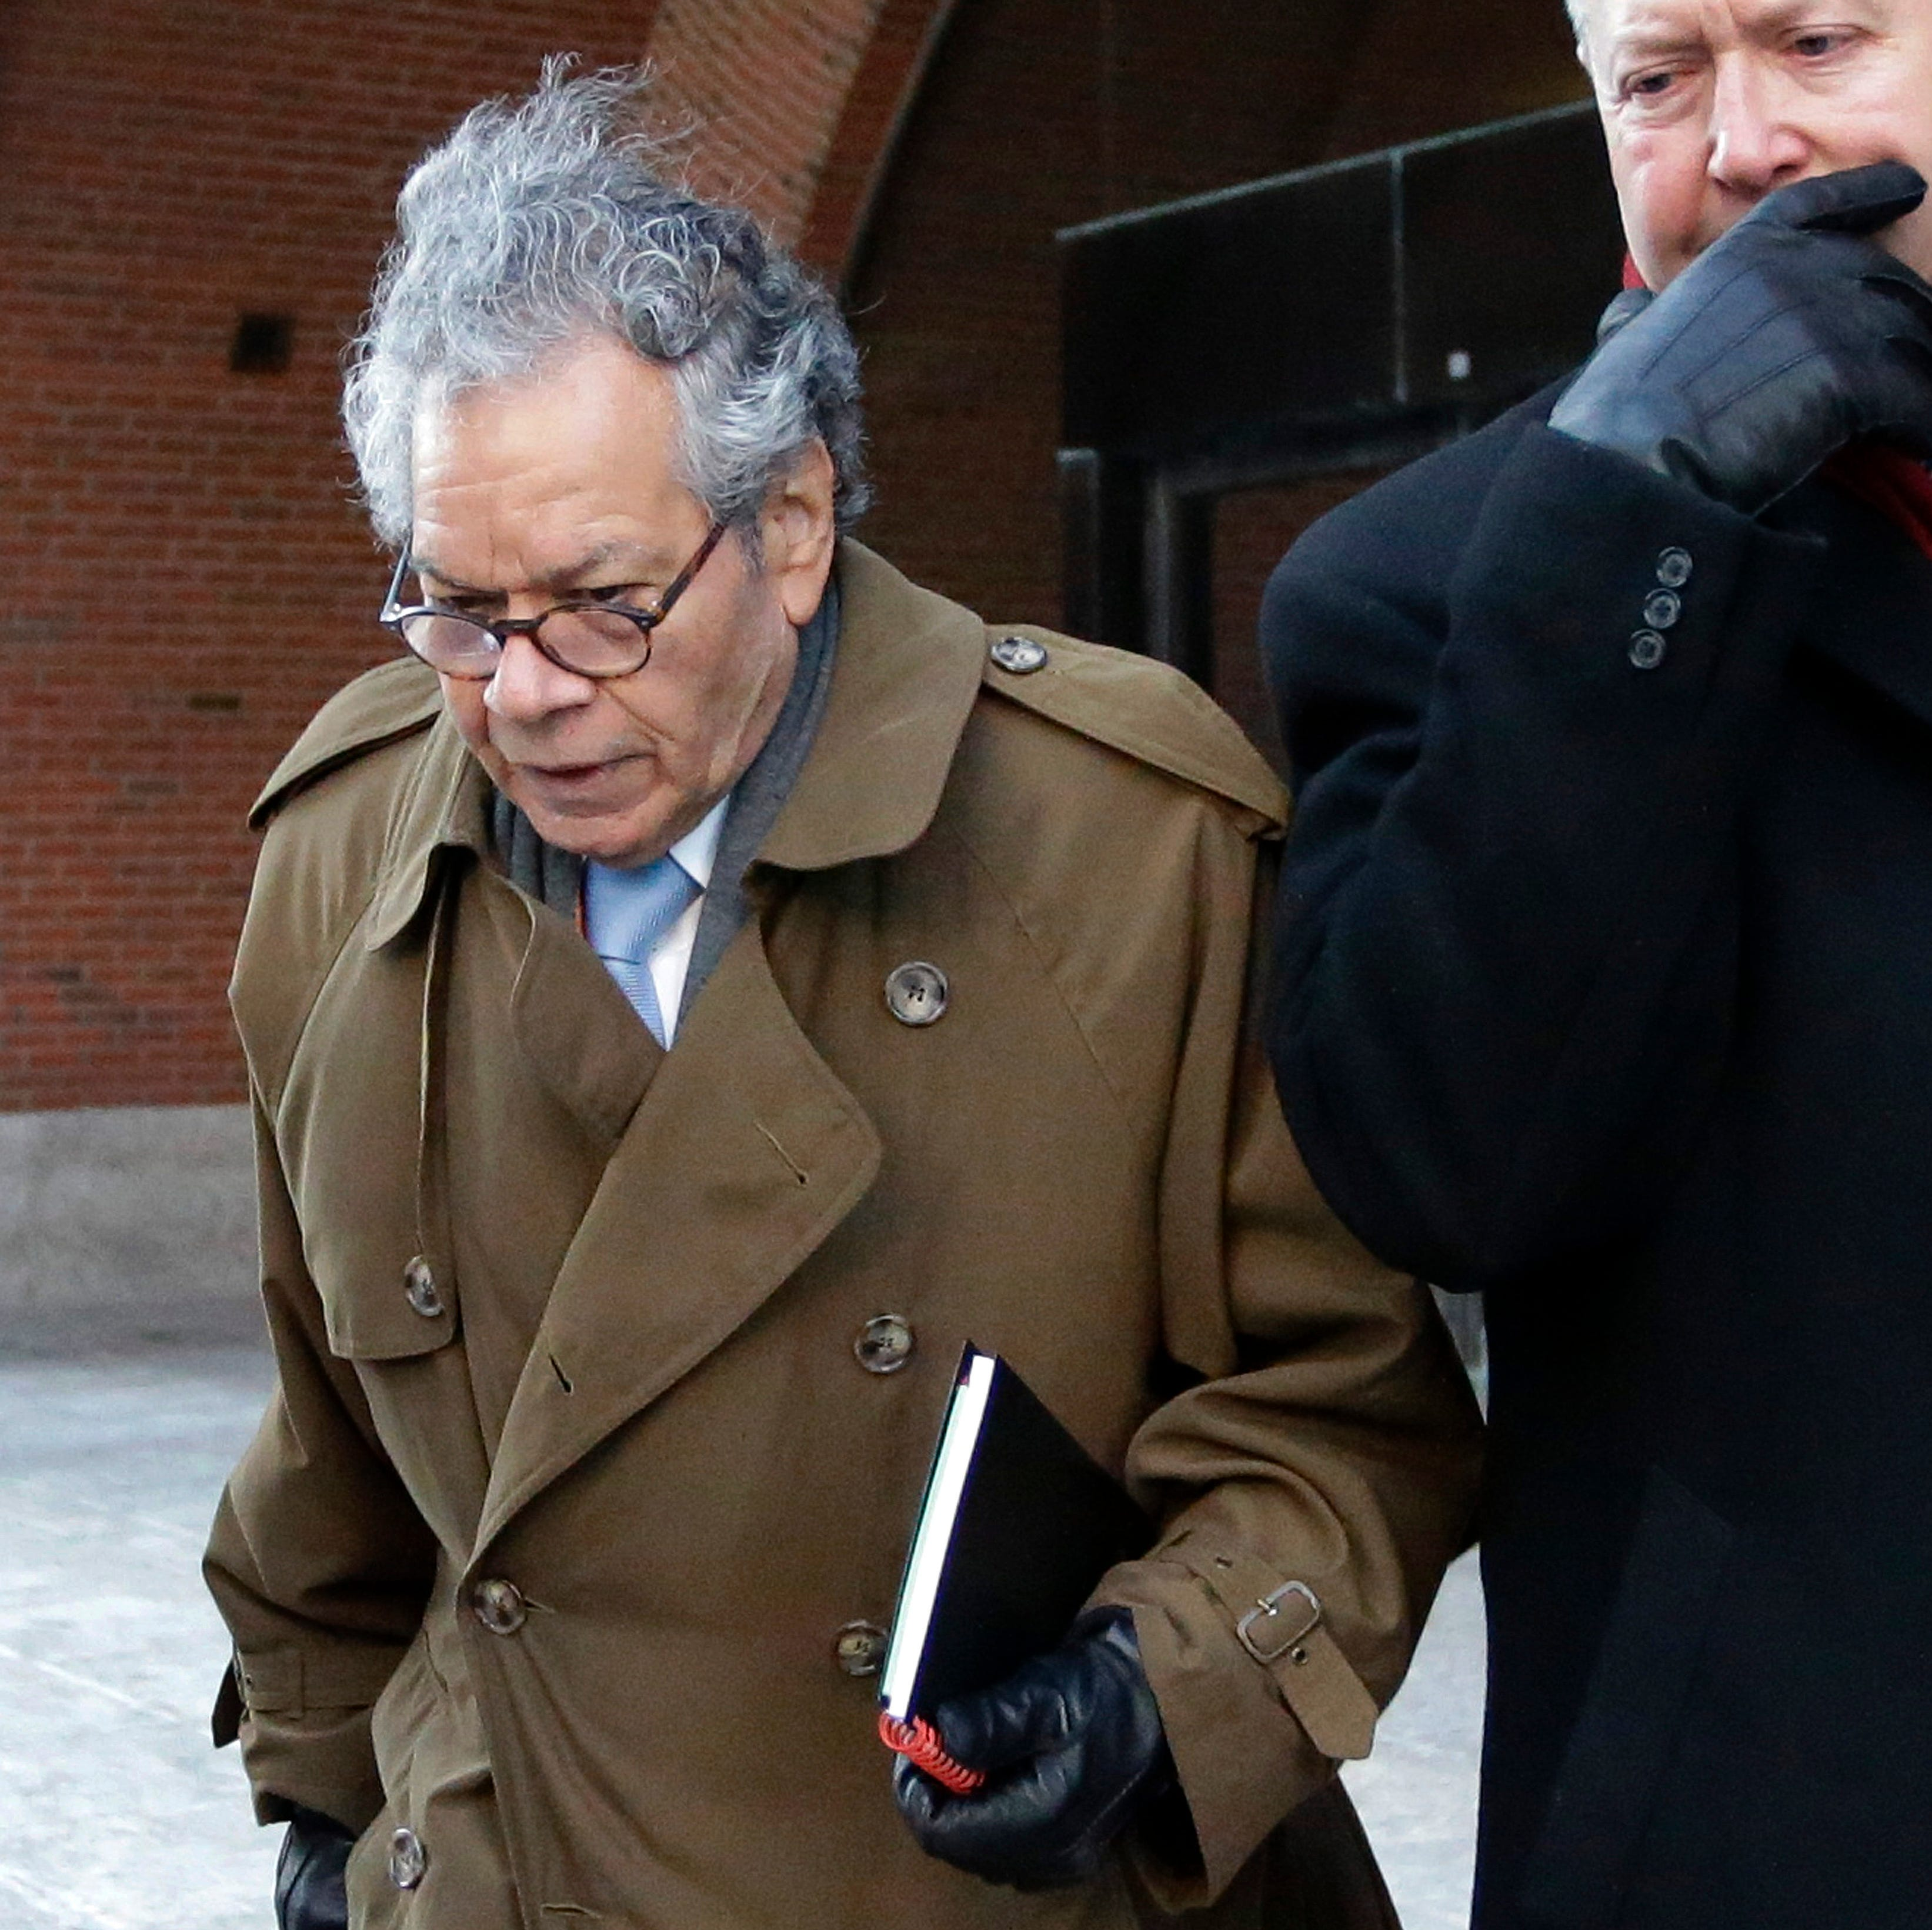 Insys Therapeutics CEO John Kapoor, 4 other execs found guilty in fentanyl bribery case